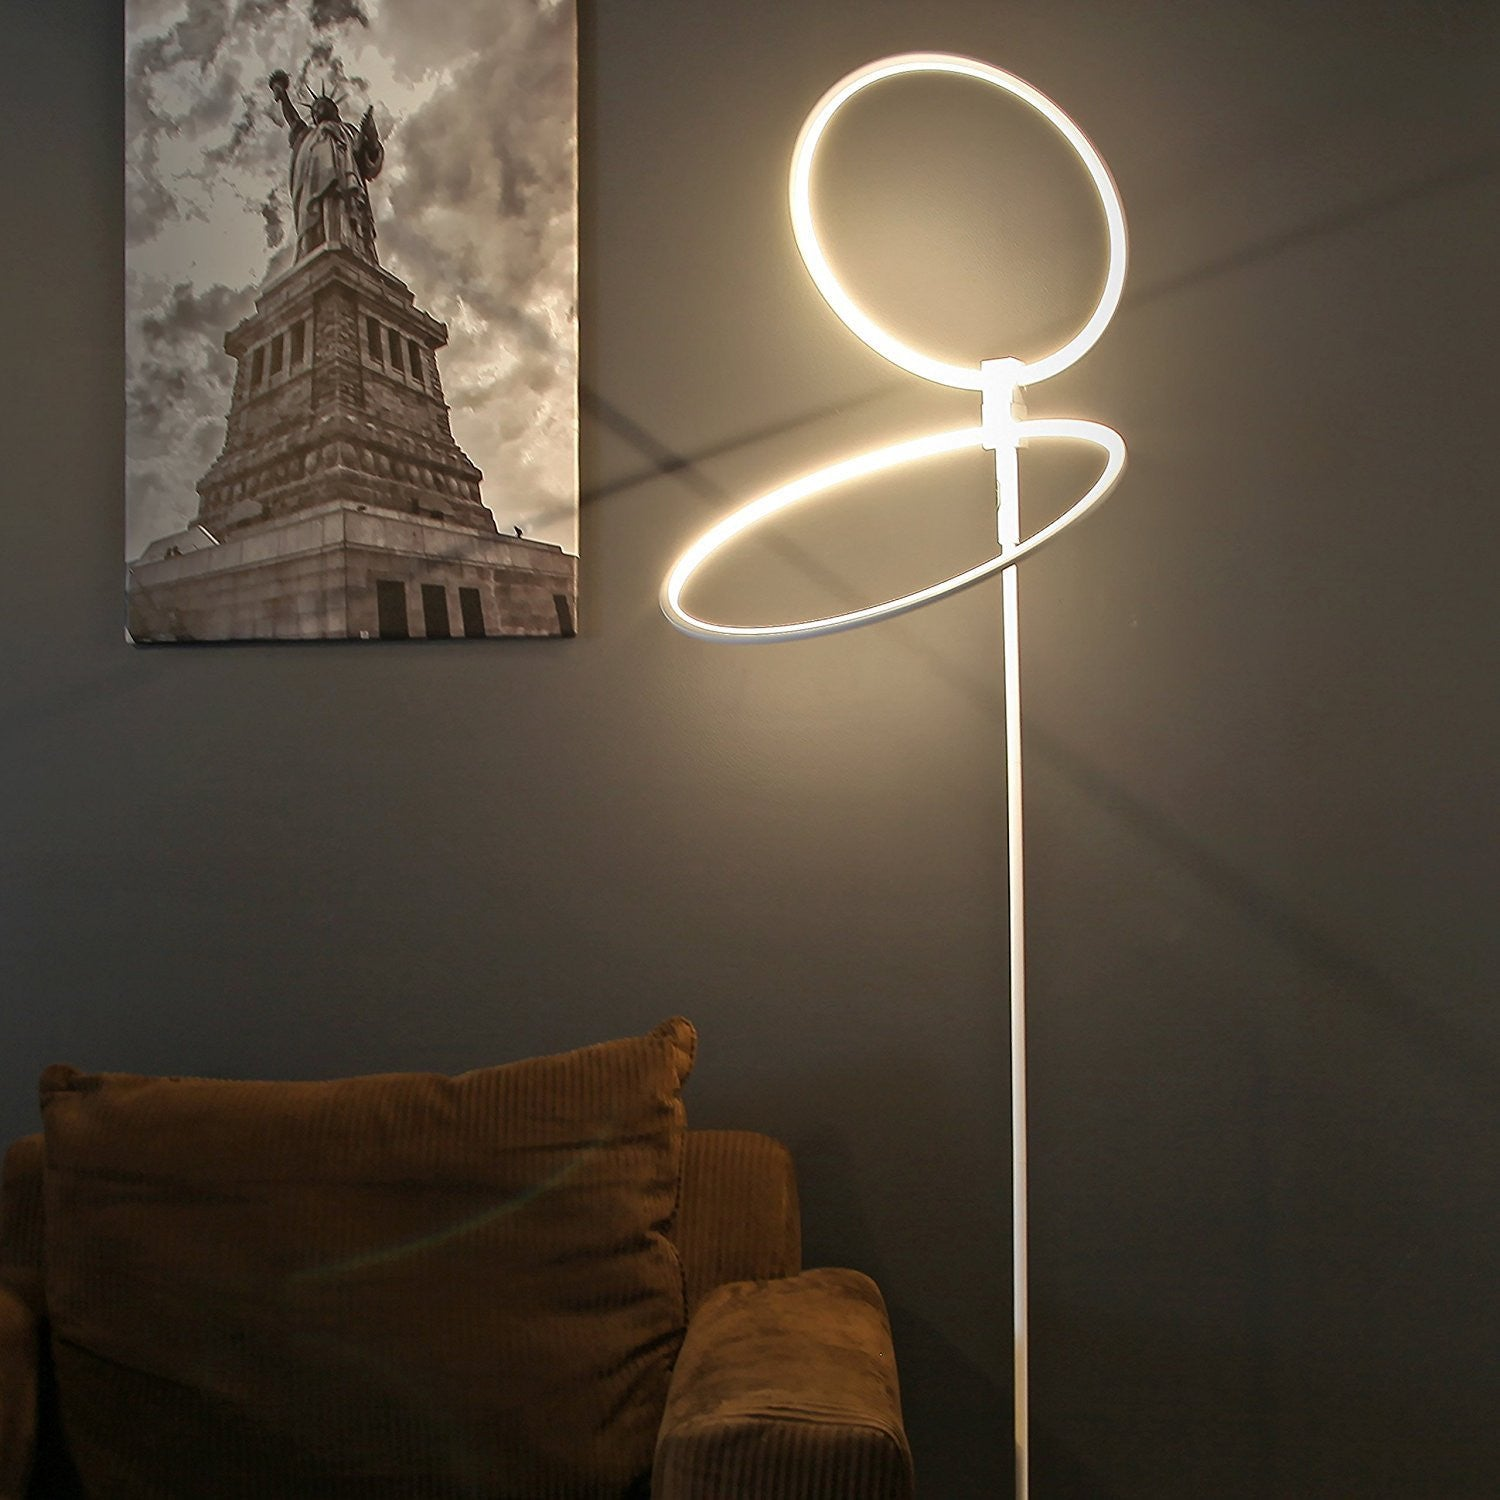 Brightech store eclipse led floor lamp rings of light bring brightech store eclipse led floor lamp rings of light bring sci fi ambiance to contemporary spaces 28 watts dimmable bright light silver finish aloadofball Images